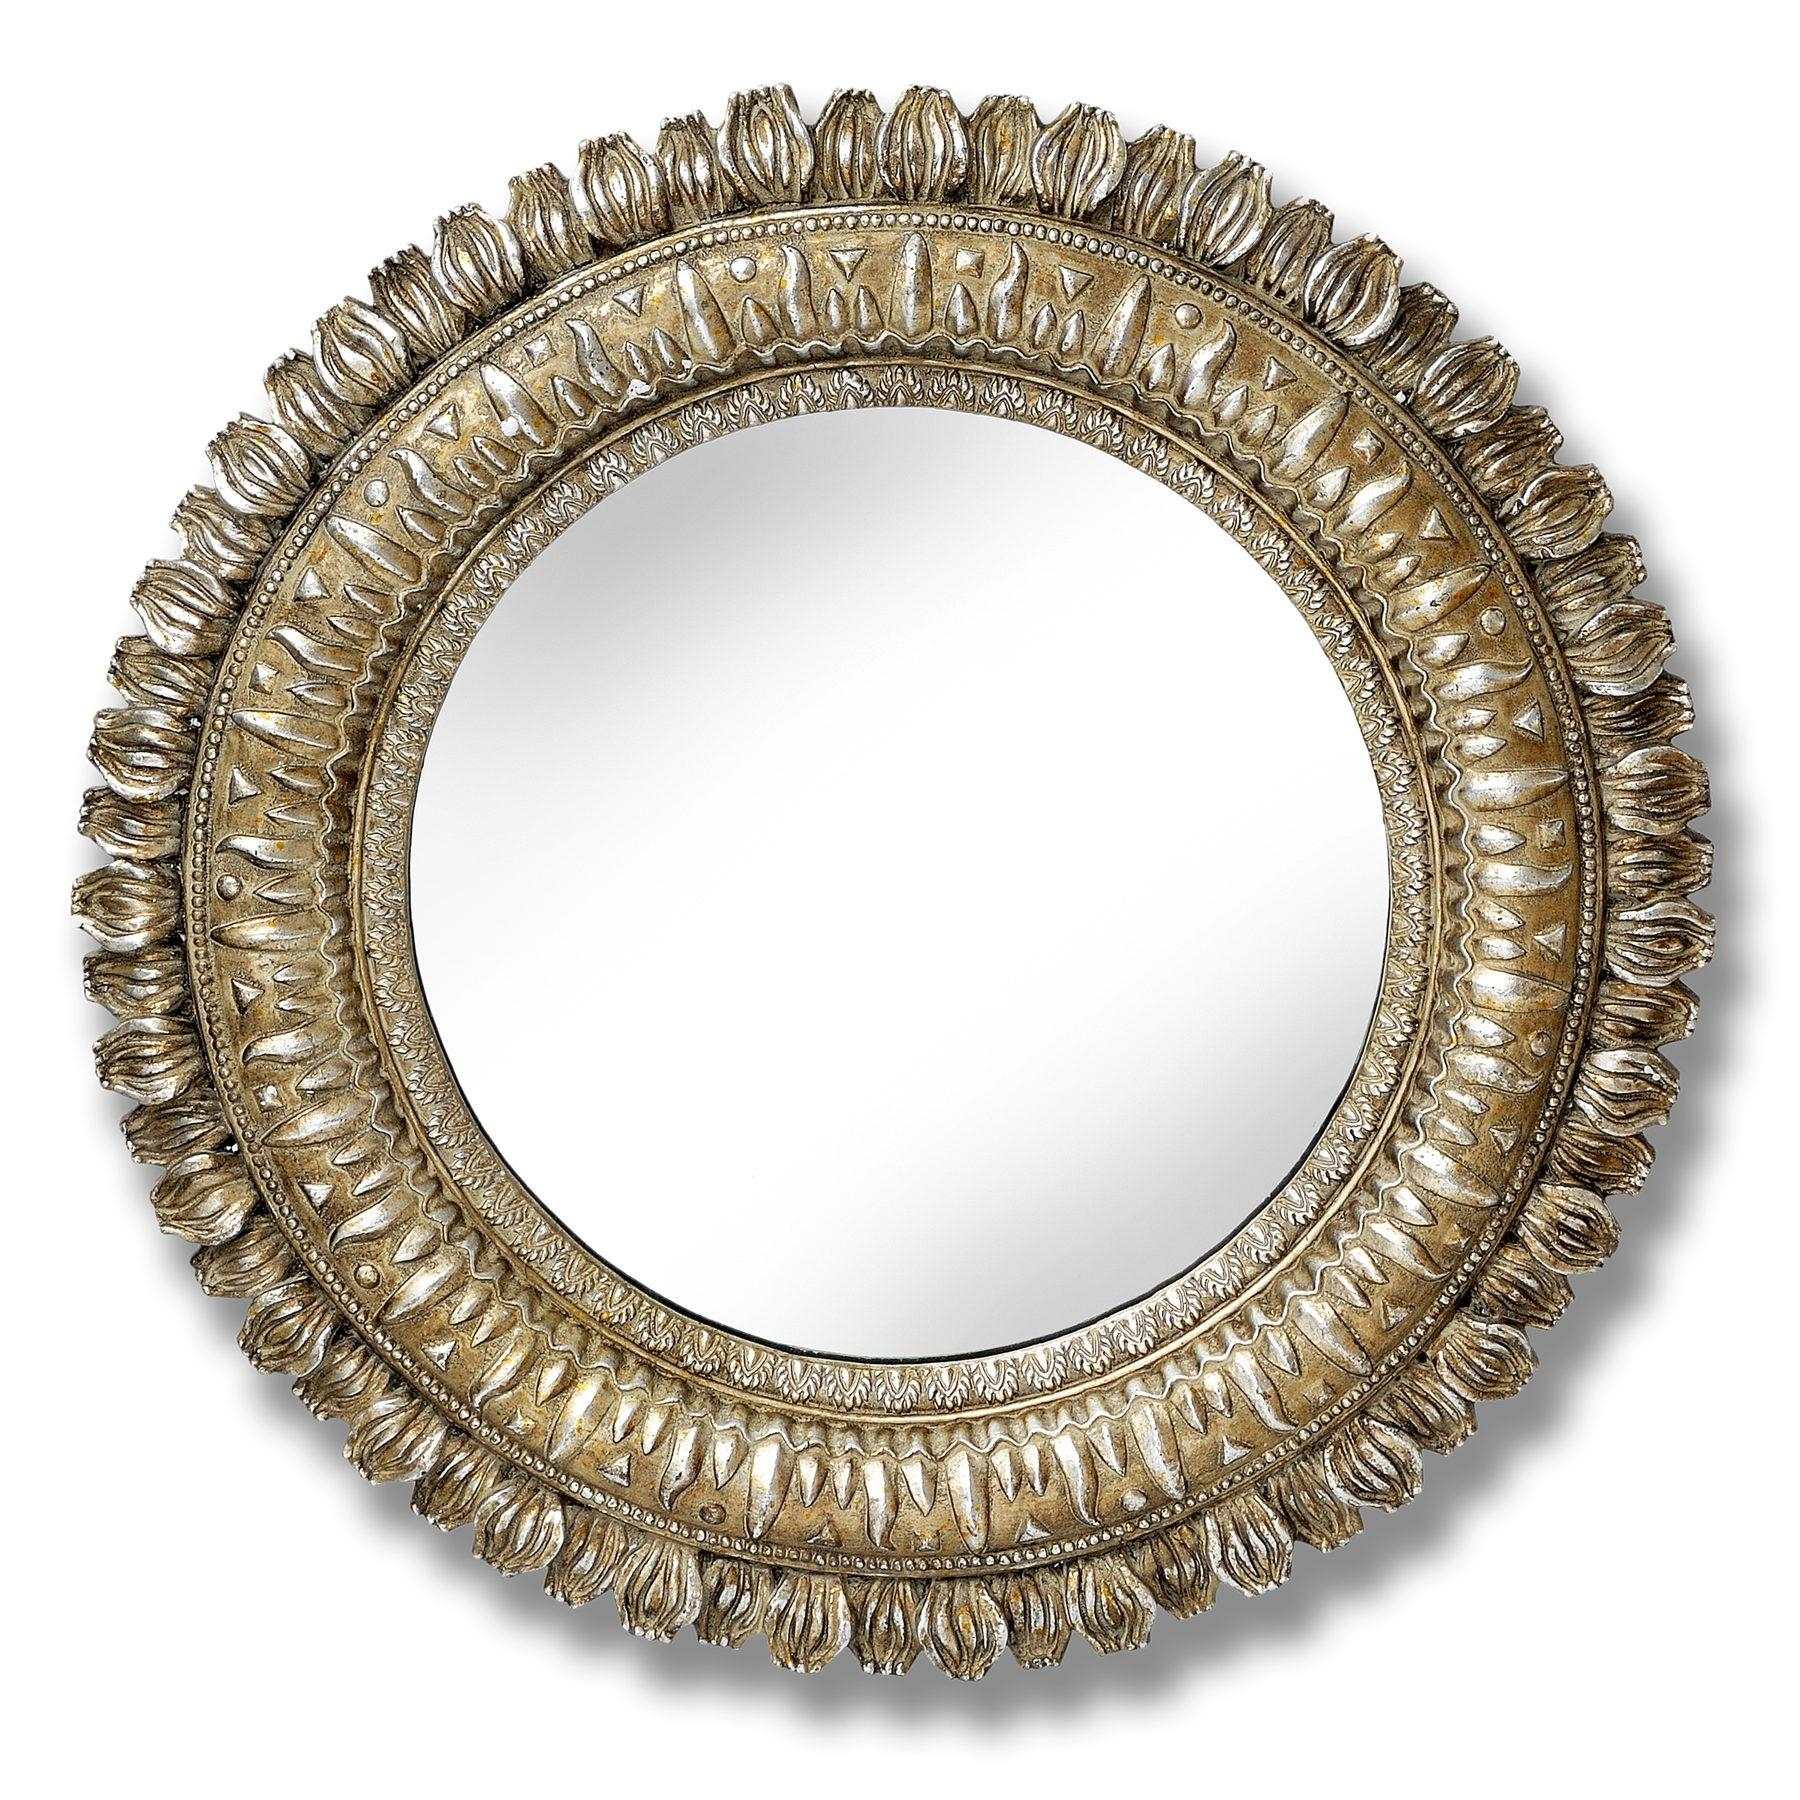 Mirrors Sale | Designer Mirrors | Swanky Interiors With Regard To Round Mirror For Sale (View 2 of 20)